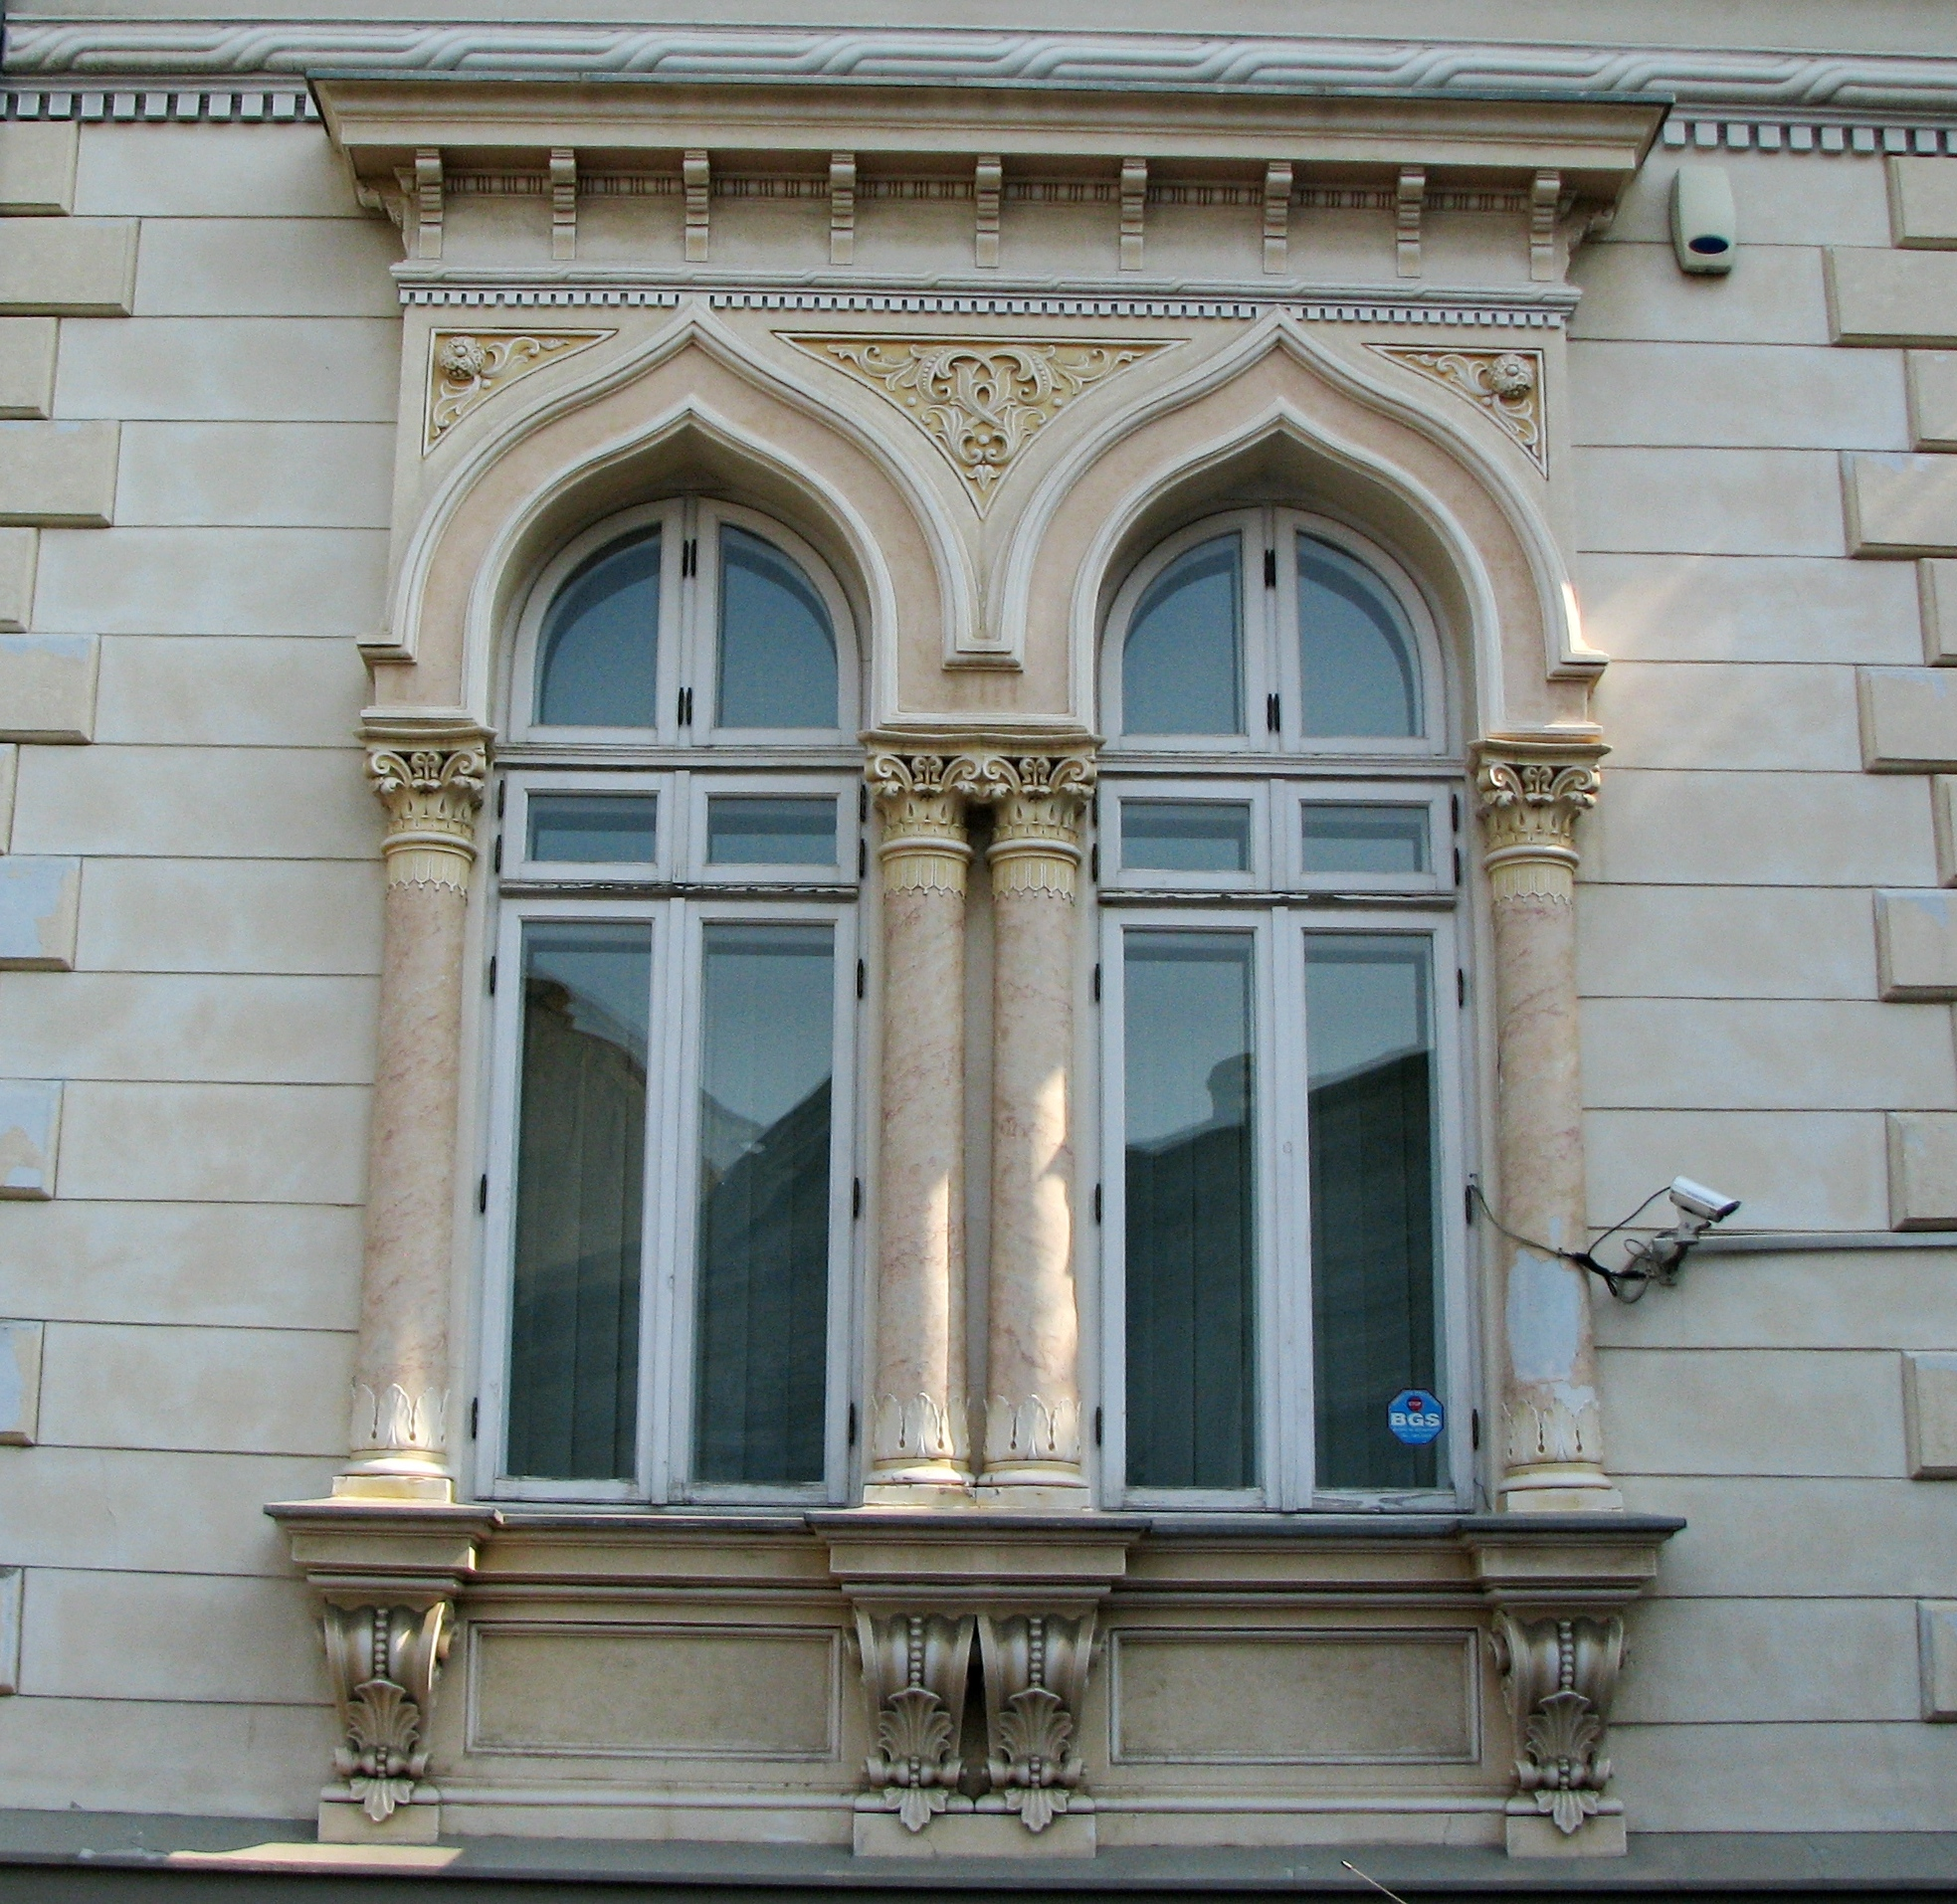 National romantic and neo romanian style house windows in for House window styles pictures